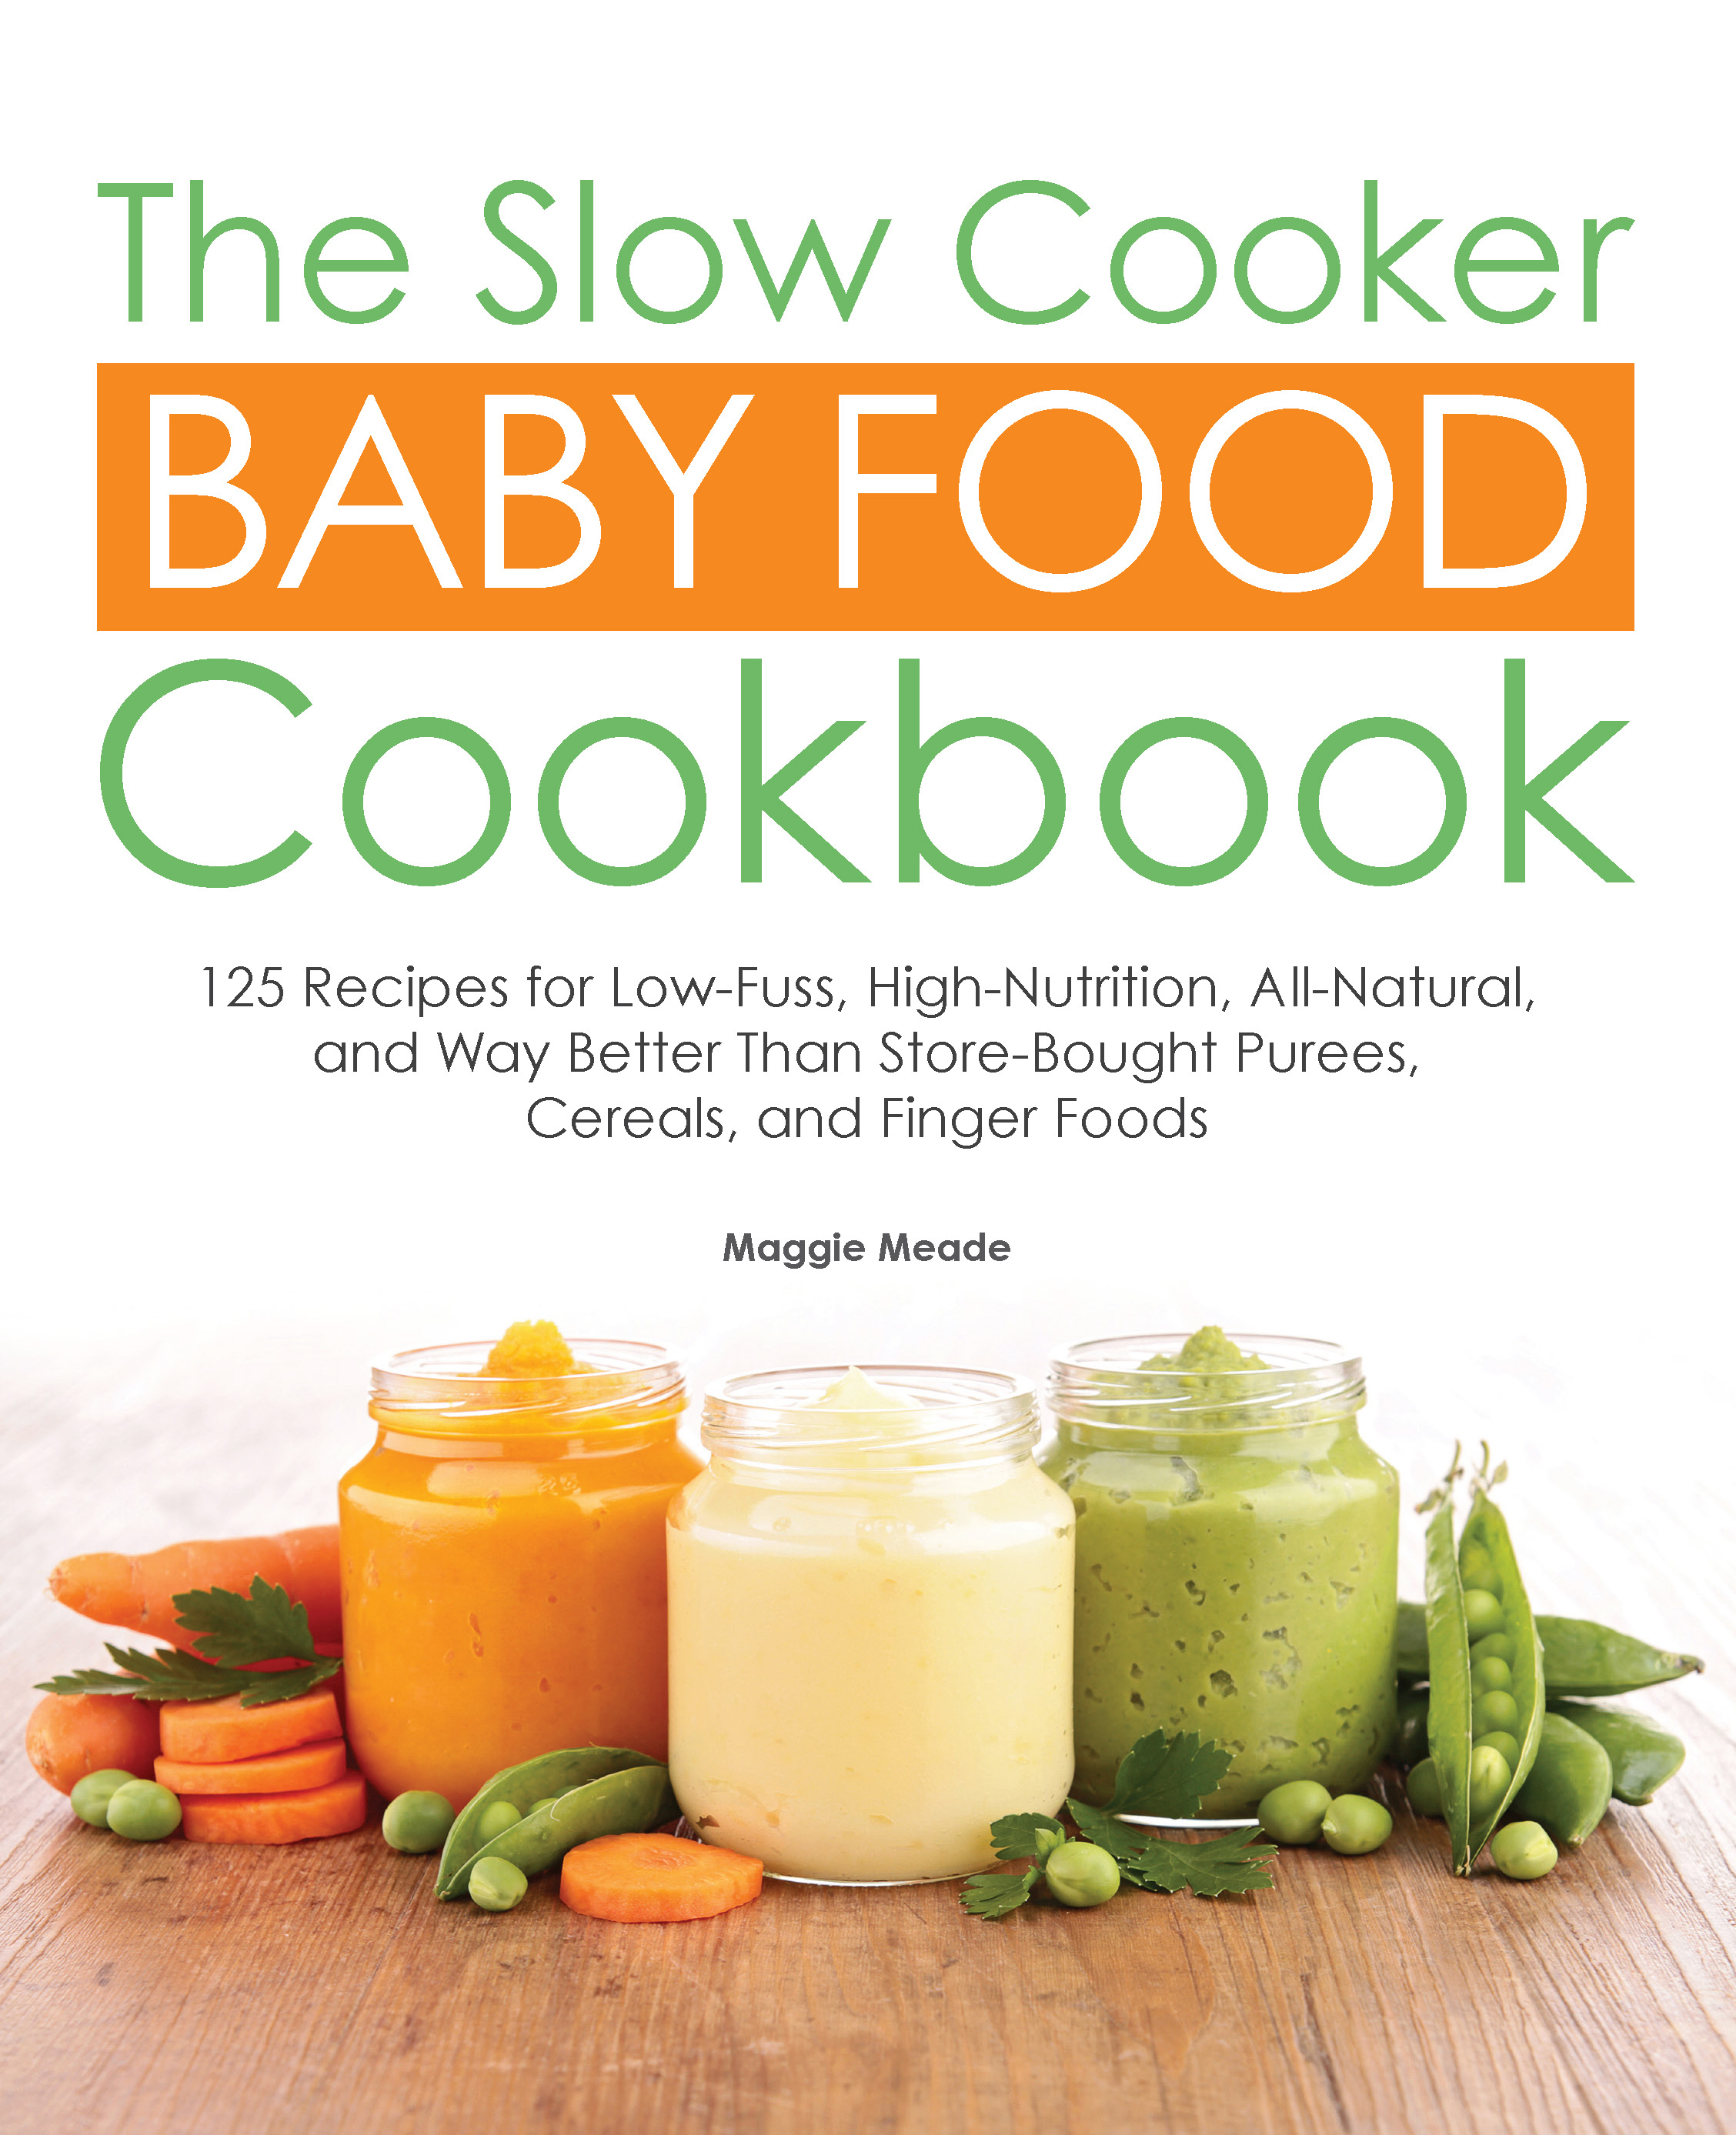 The slow cooker baby food cookbook maggie meade 9781558329089 download cover forumfinder